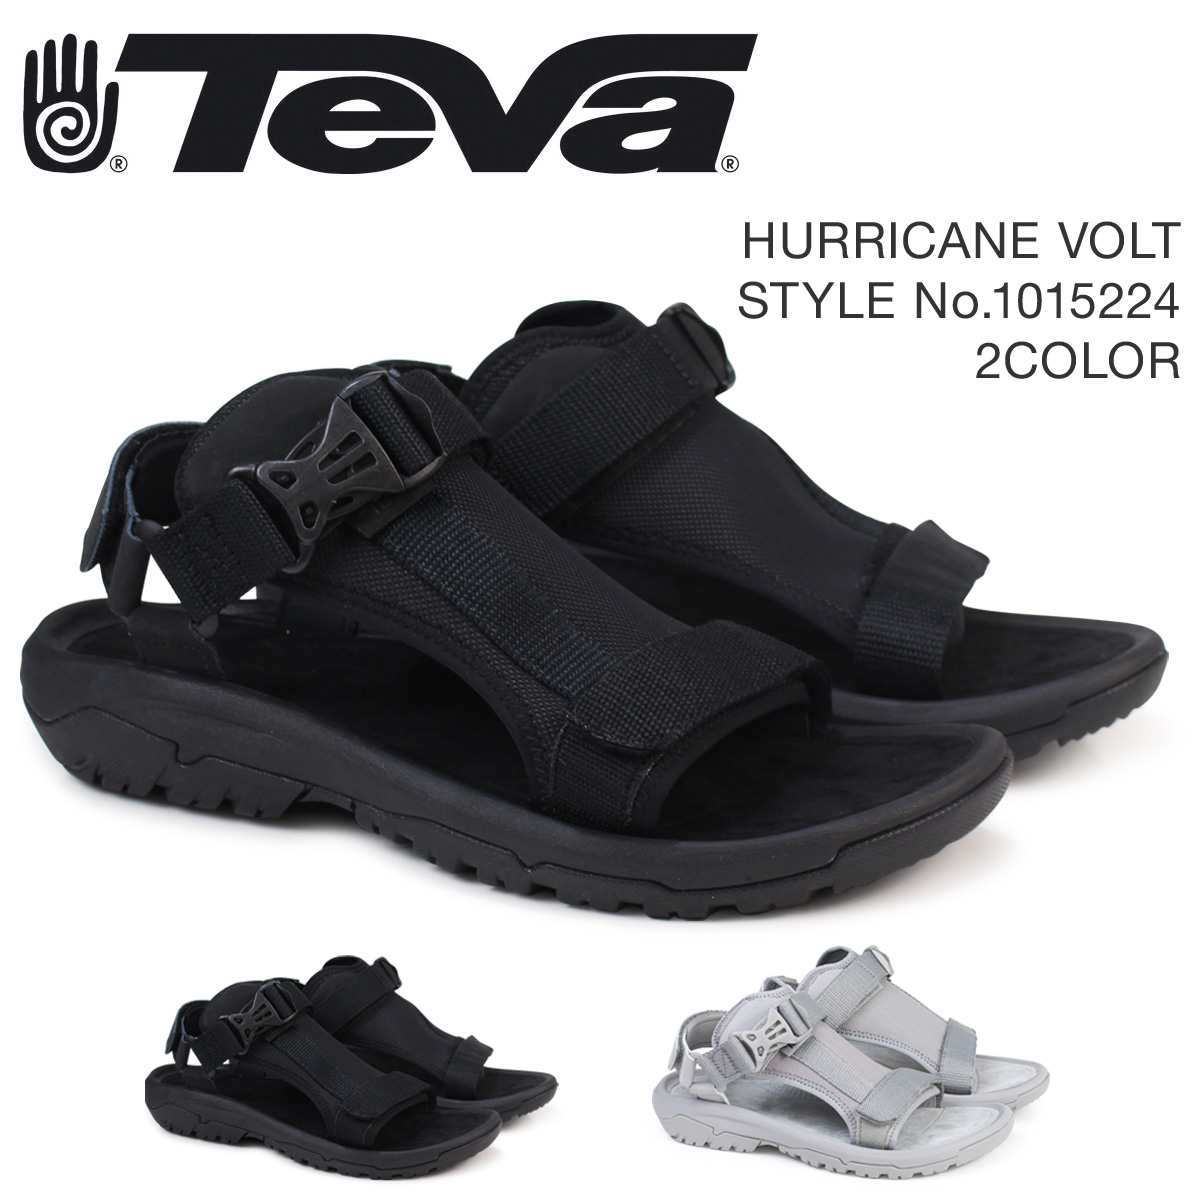 7b7d3a959124e Because I developed sports sandals with a strap for the first time in the  world